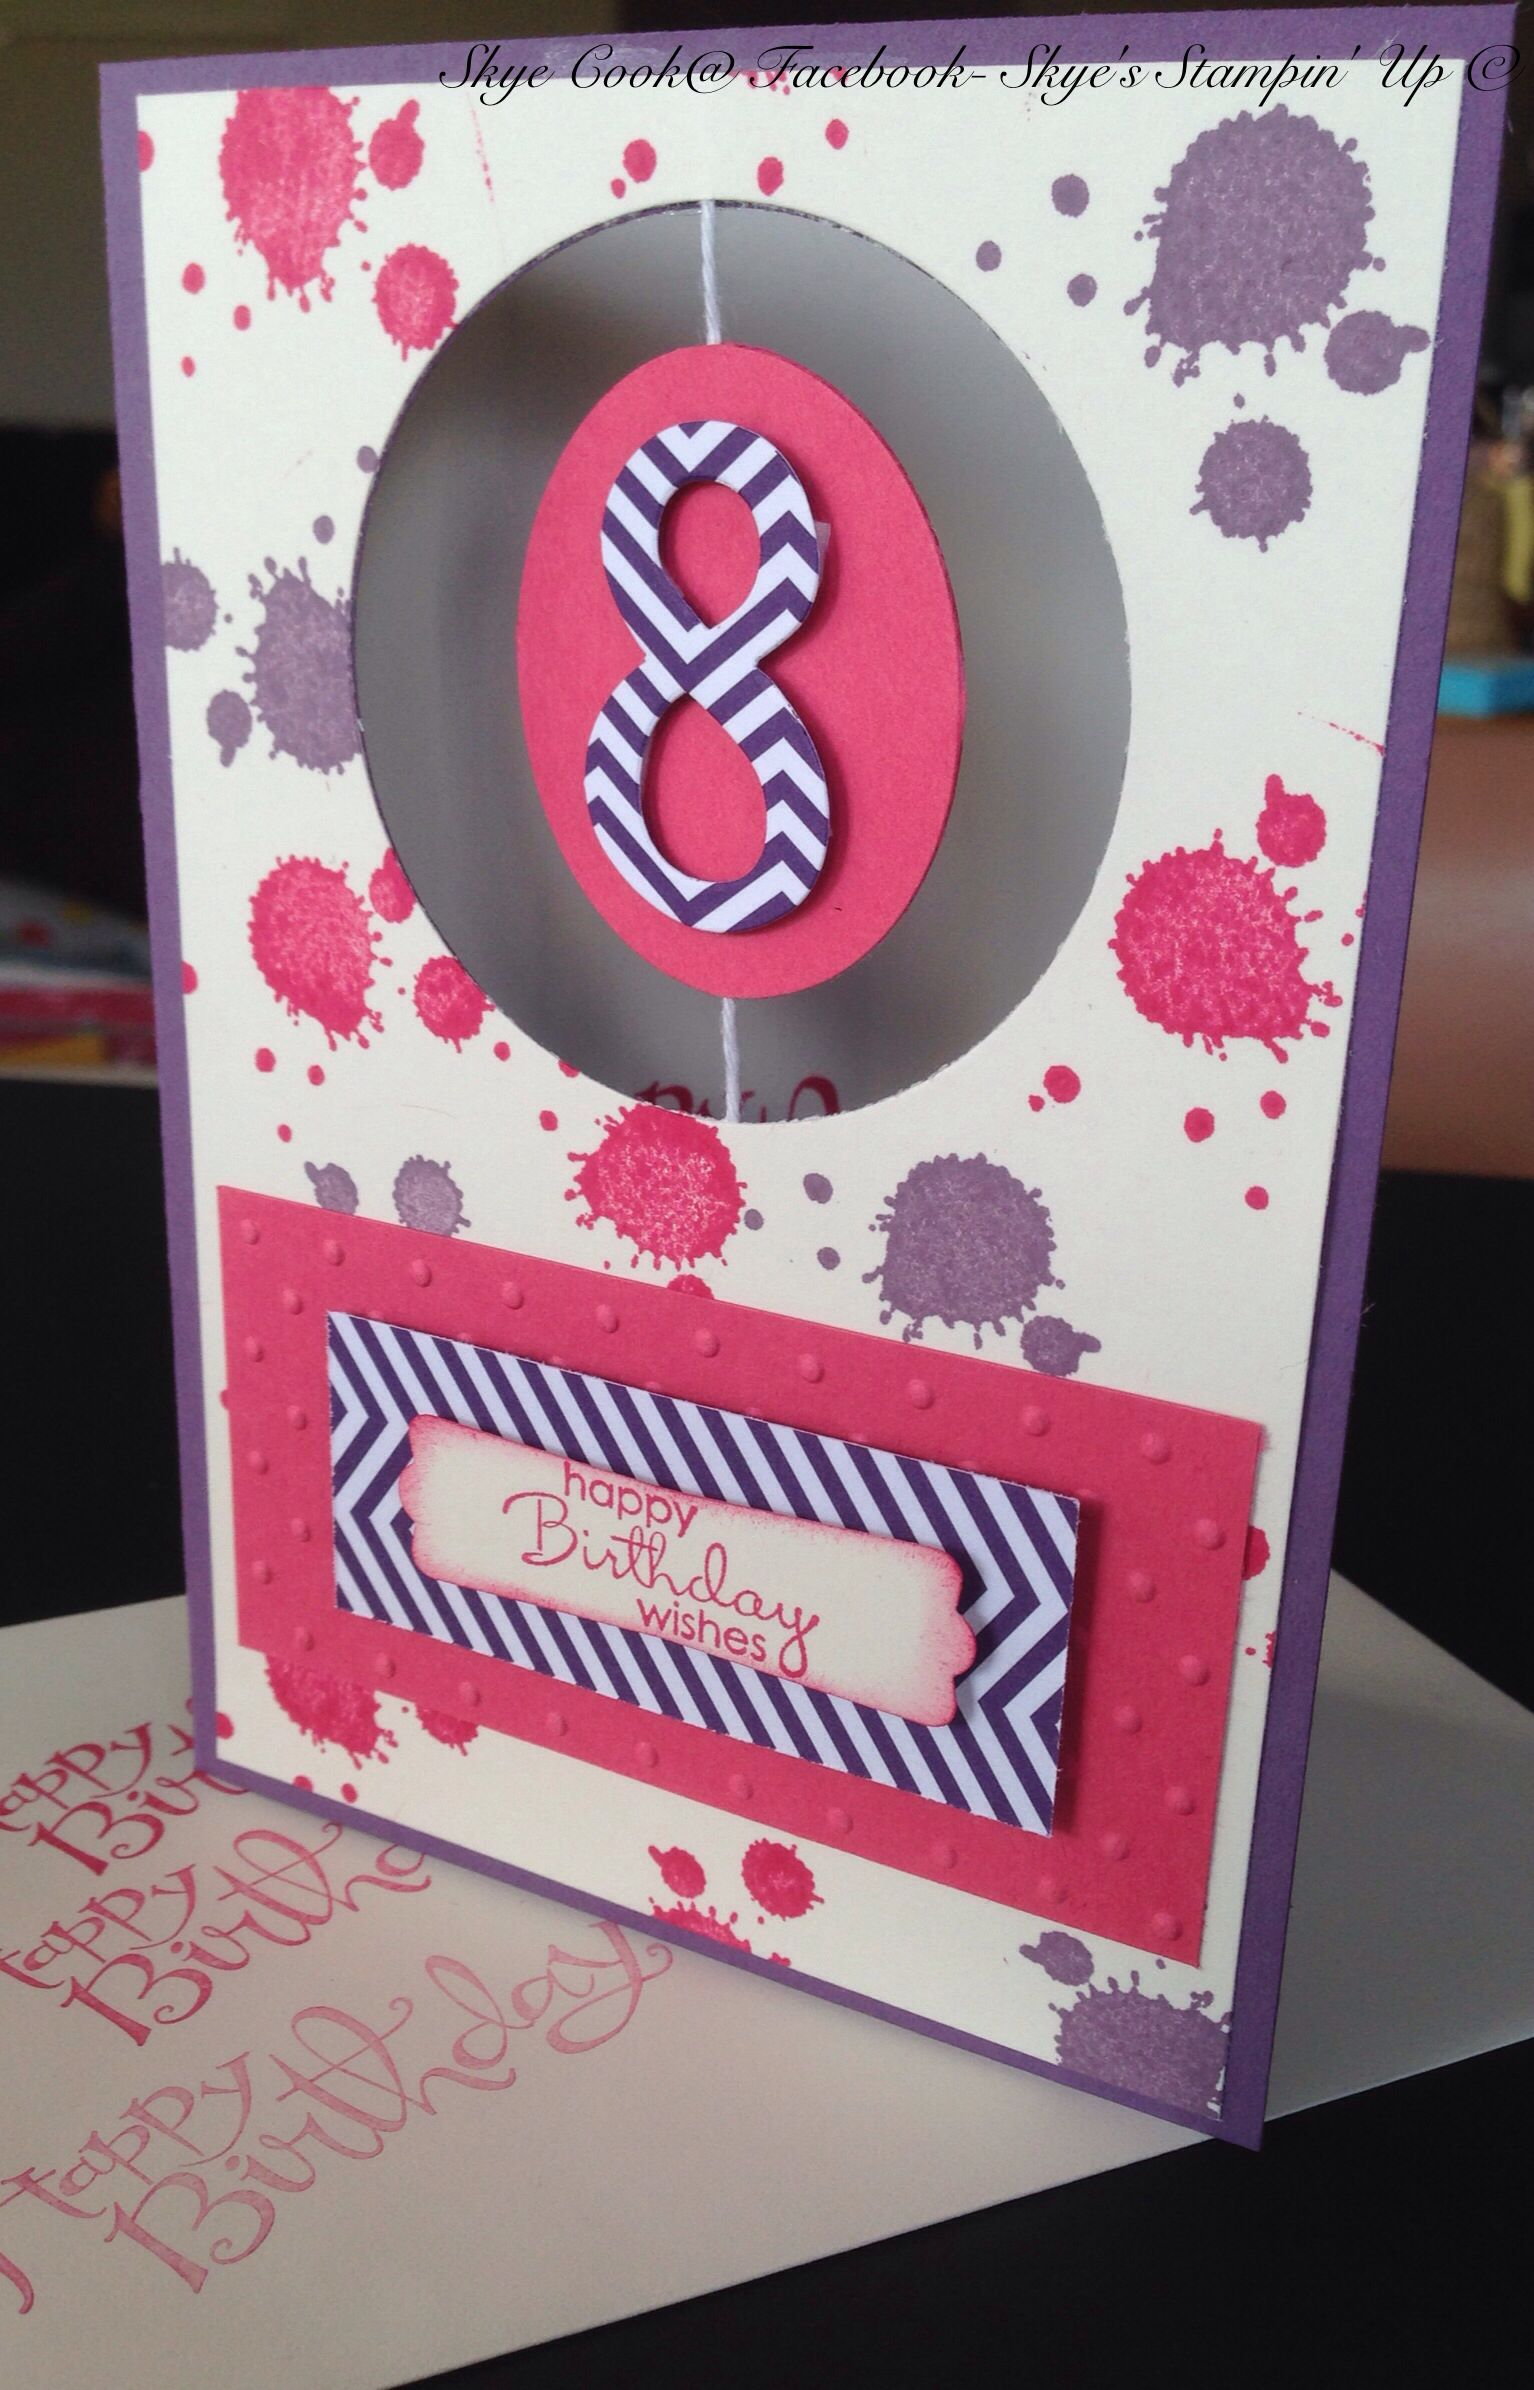 Stampin up birthday card with a spinning in the middle for